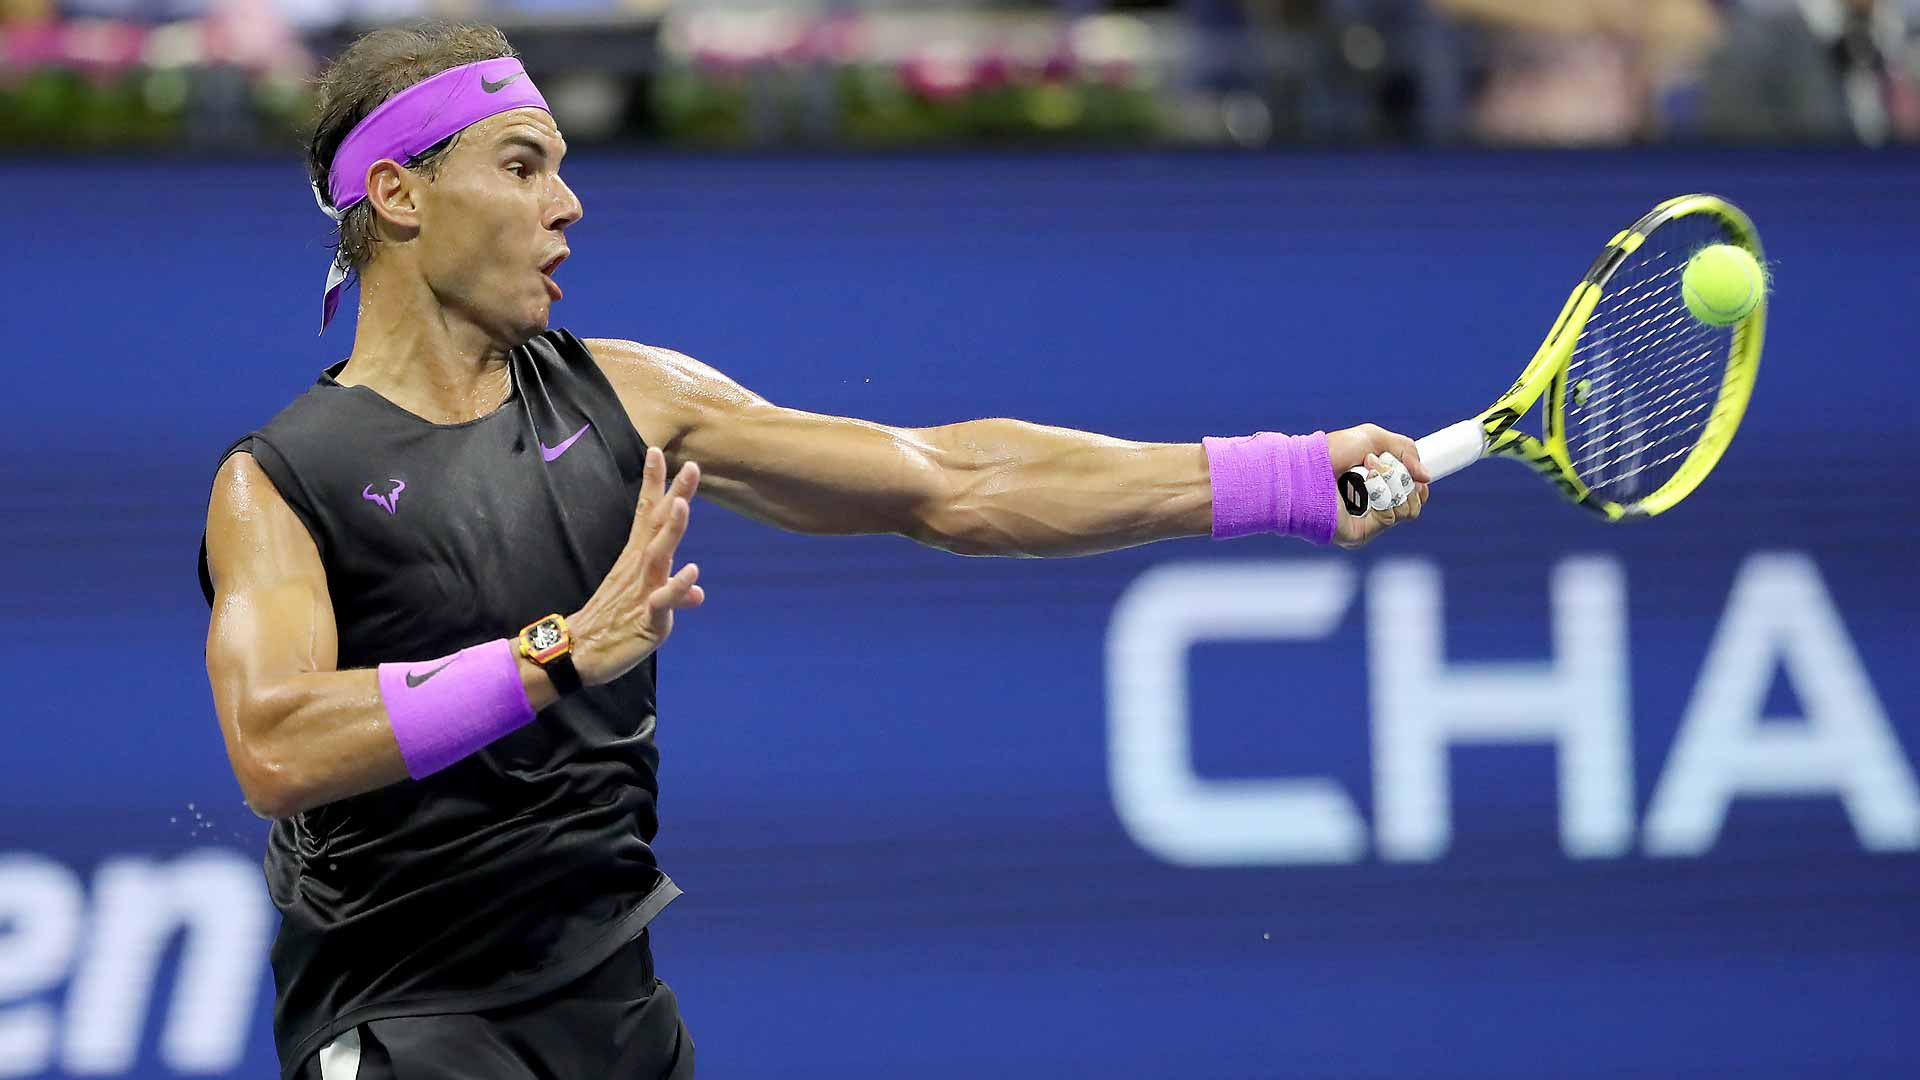 Rafael Nadal Battles Past Diego Schwartzman To Reach Us Open Semi Finals Atp Tour Tennis